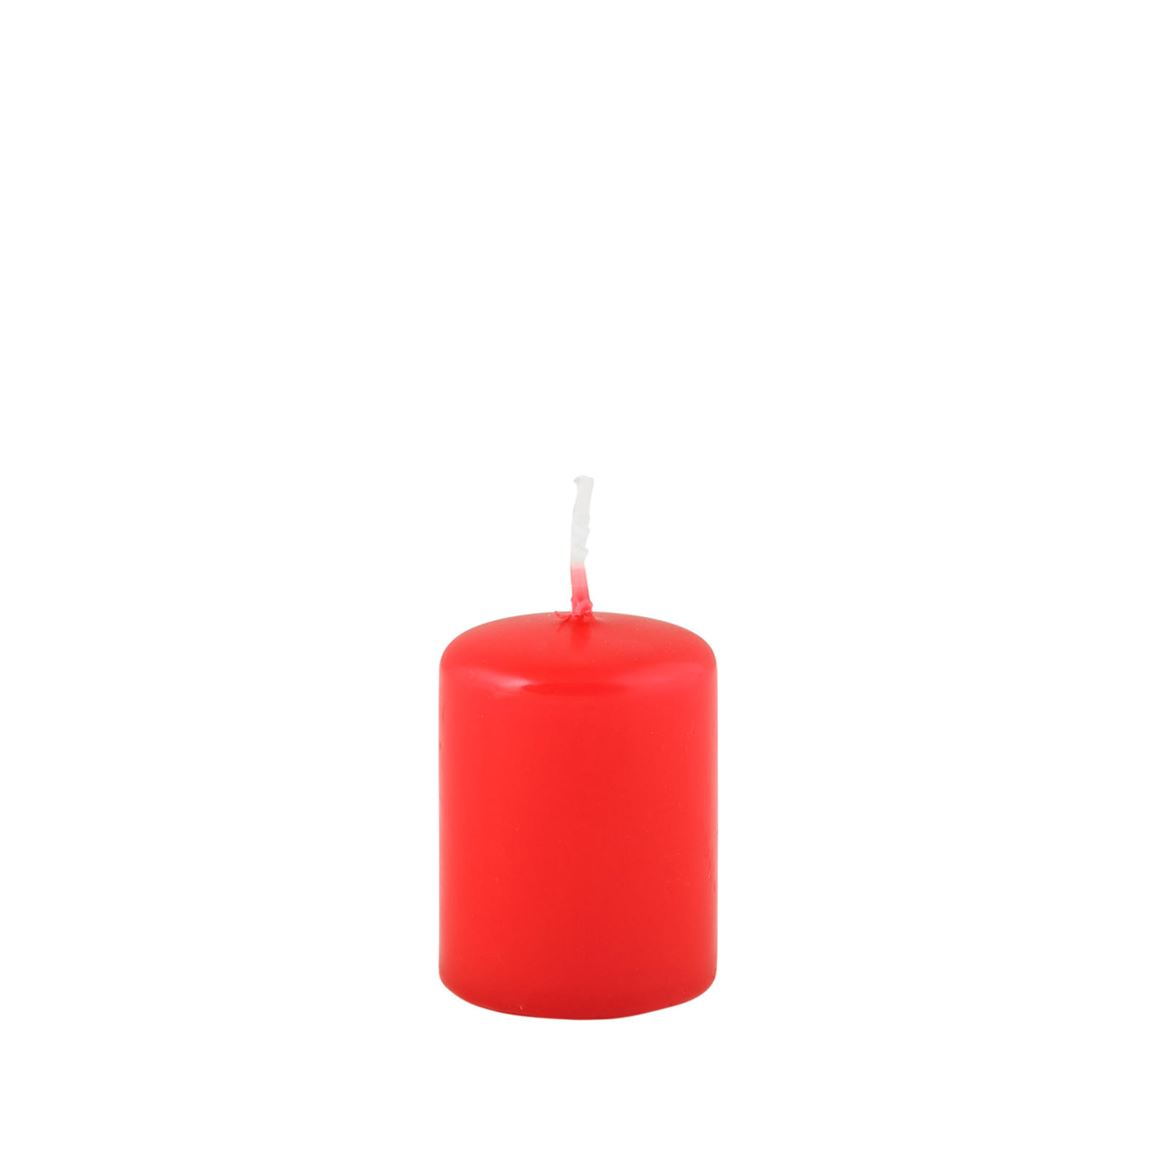 CILINDRO Bougie cylindrique rouge H 5 cm; Ø 4 cm_cilindro-bougie-cylindrique-rouge-h-5-cm;-ø-4-cm